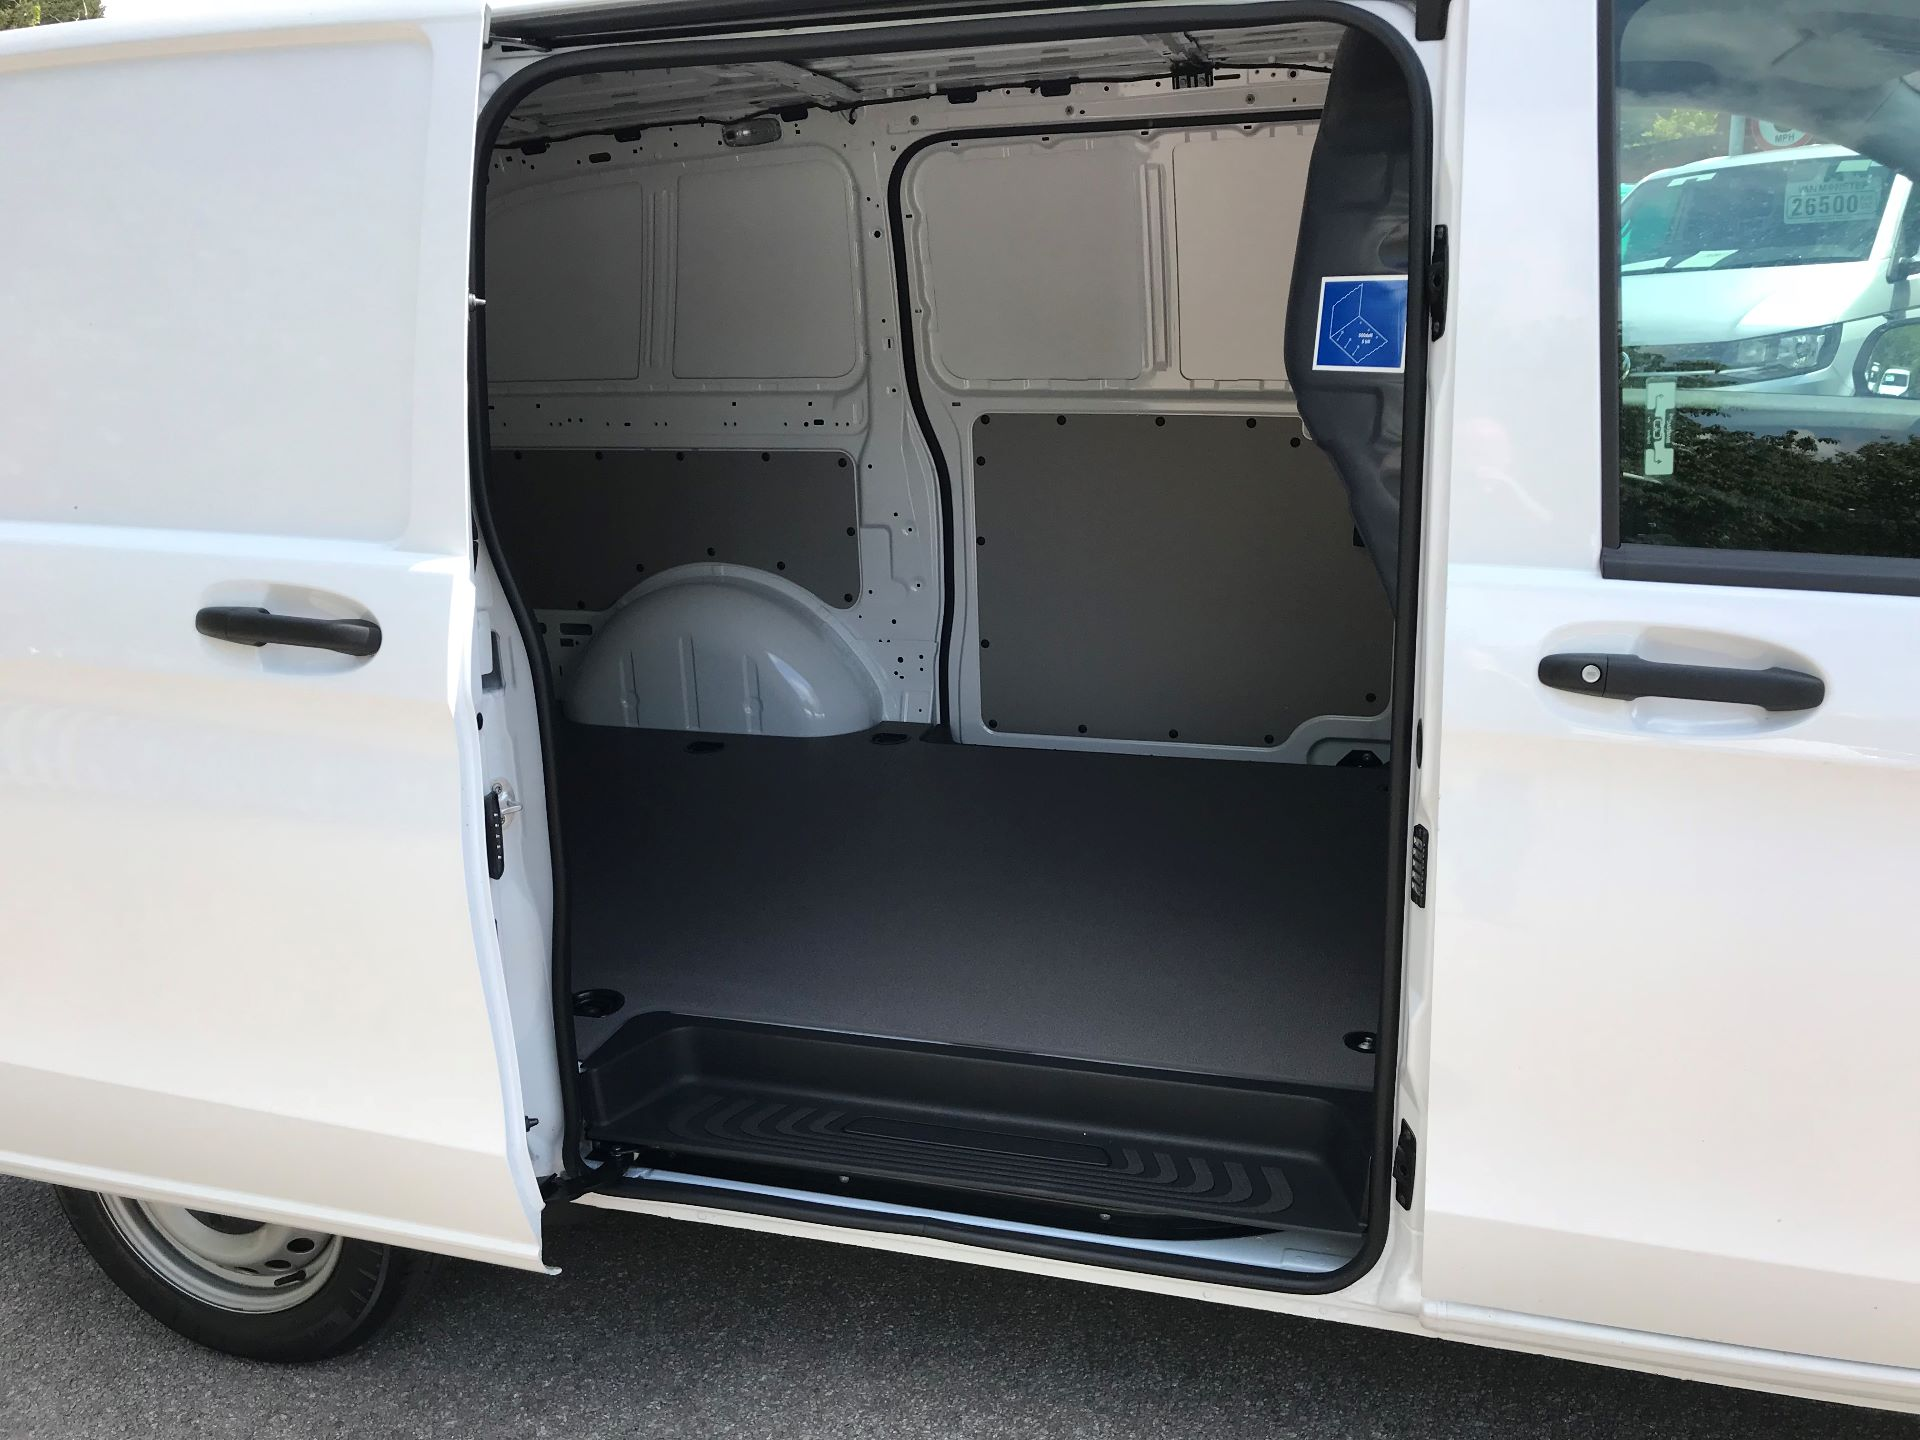 2019 Mercedes-Benz Vito 111Cdi Van Euro 6 Massive specification A/C (YM19HFV) Image 9